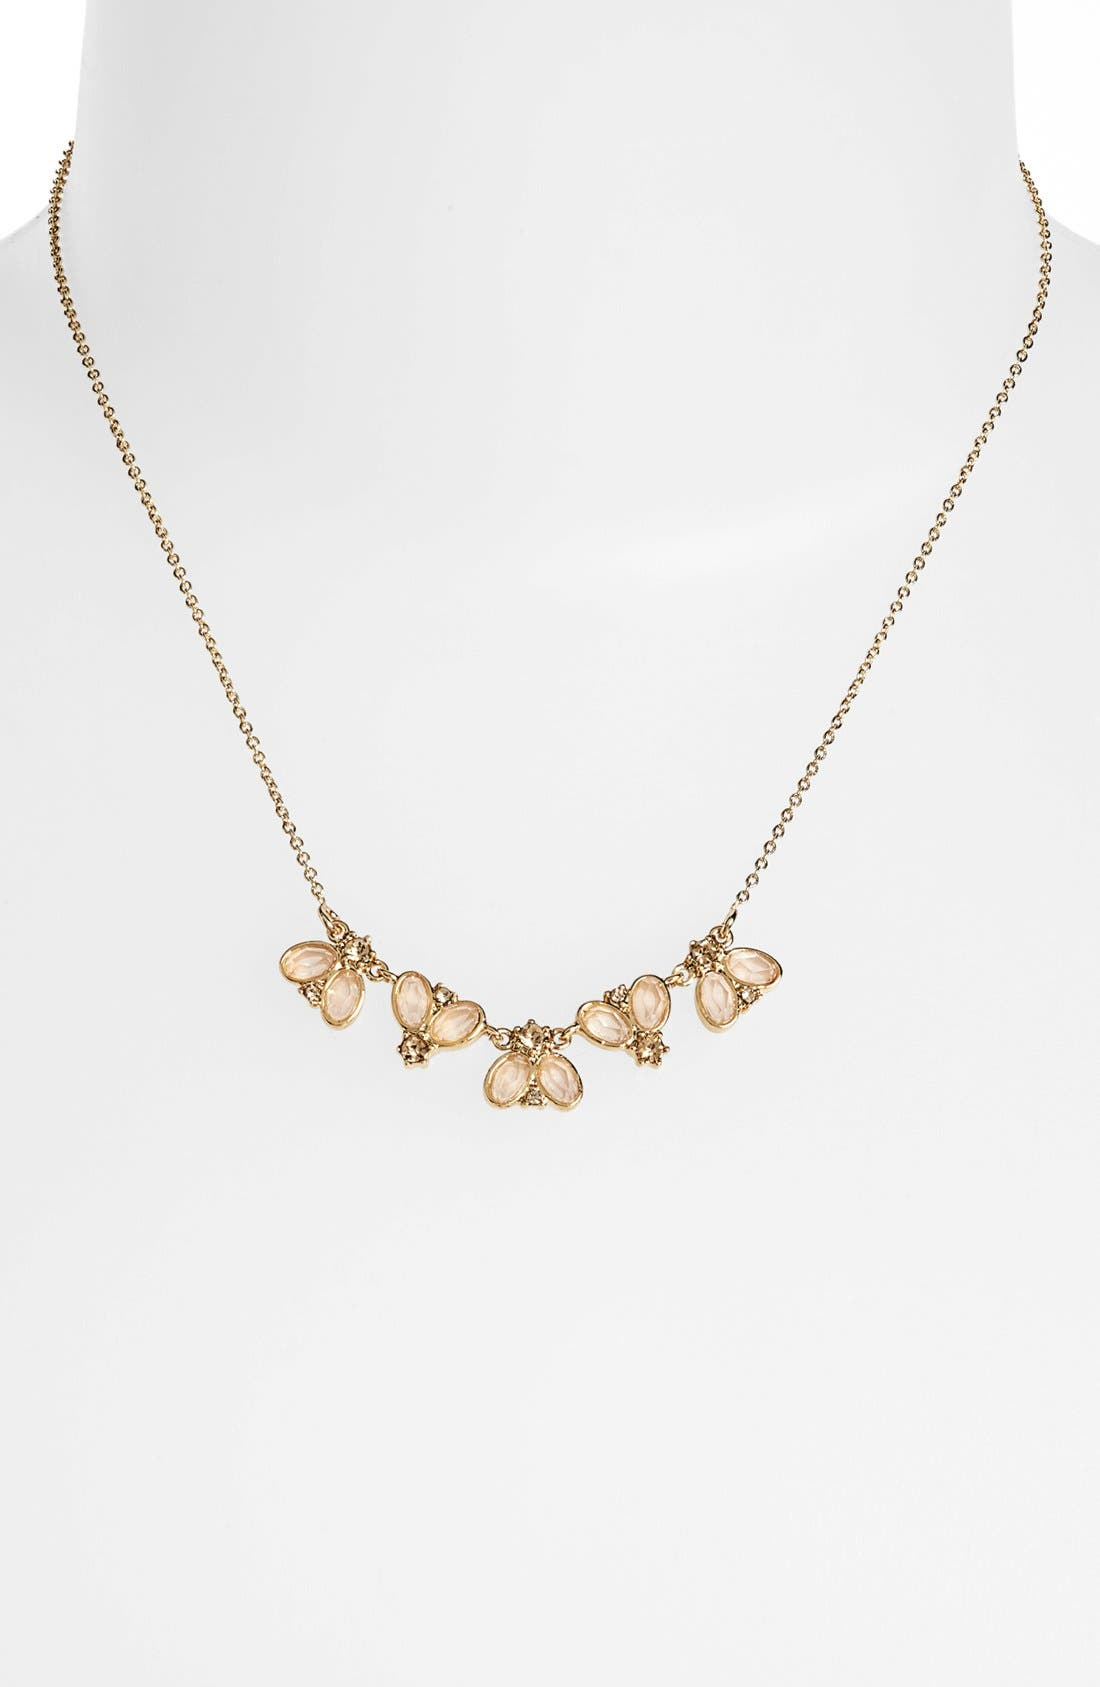 Alternate Image 1 Selected - kate spade new york 'floral fete' necklace